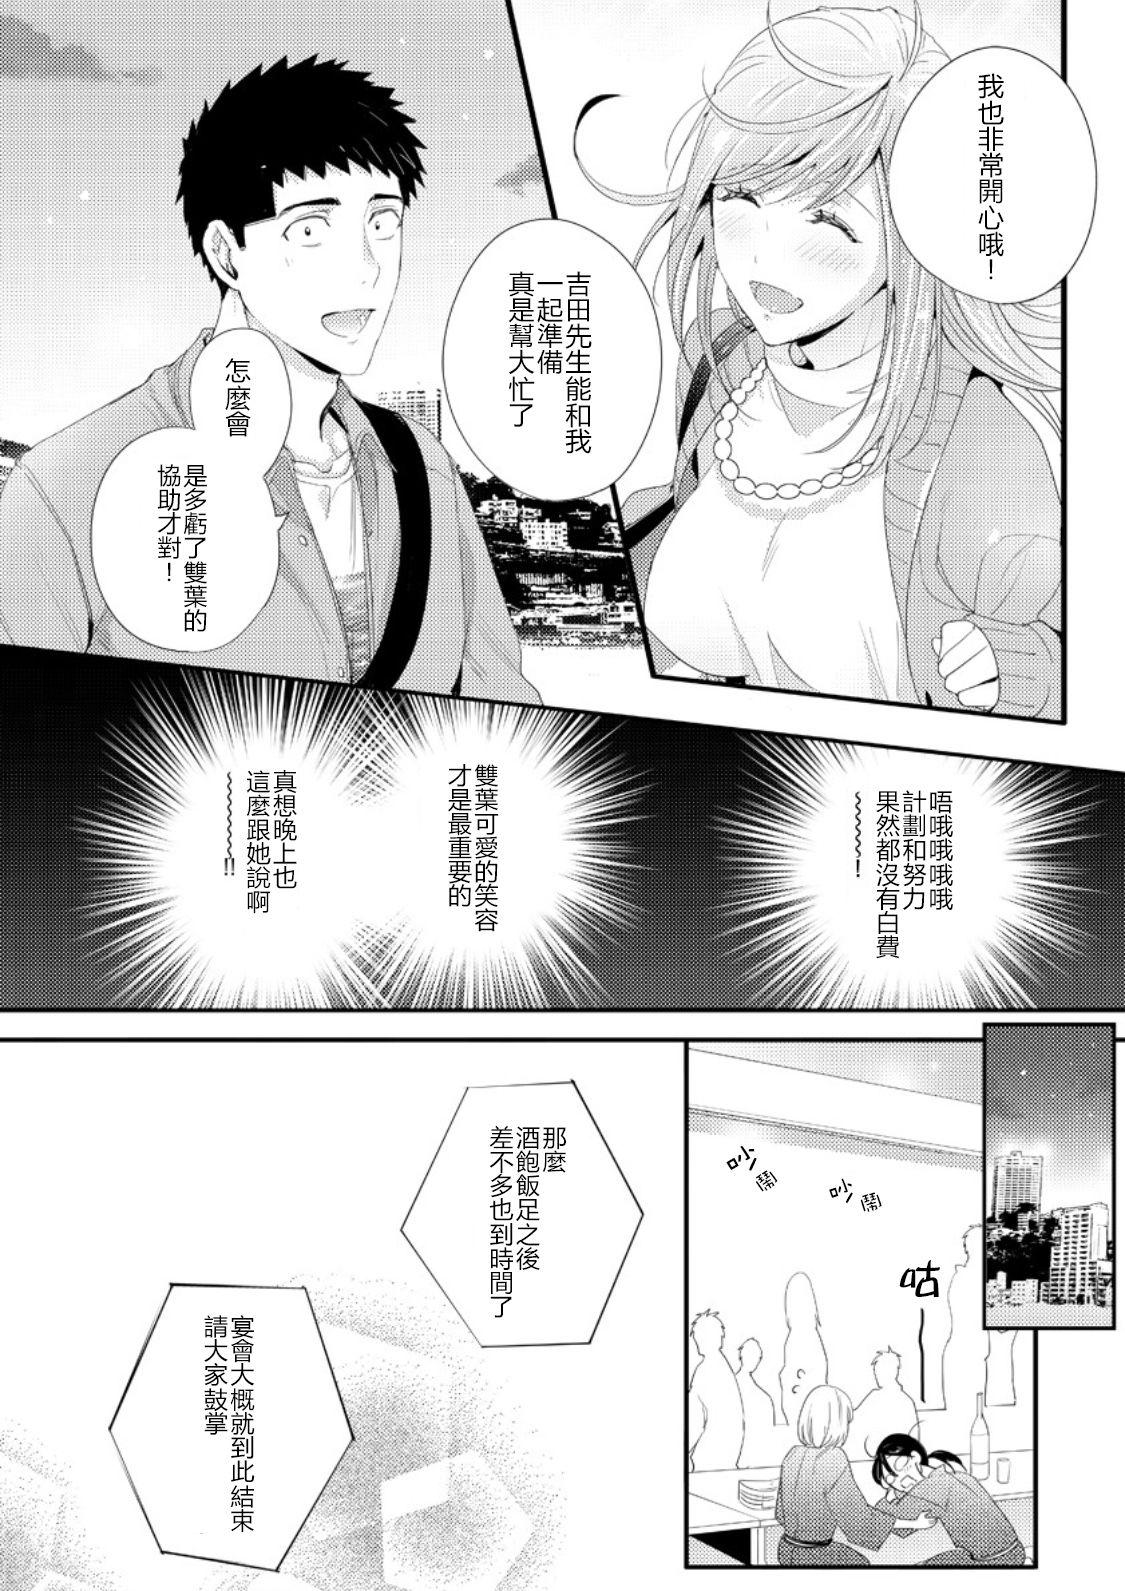 Please Let Me Hold You Futaba-San! Ch.1 9